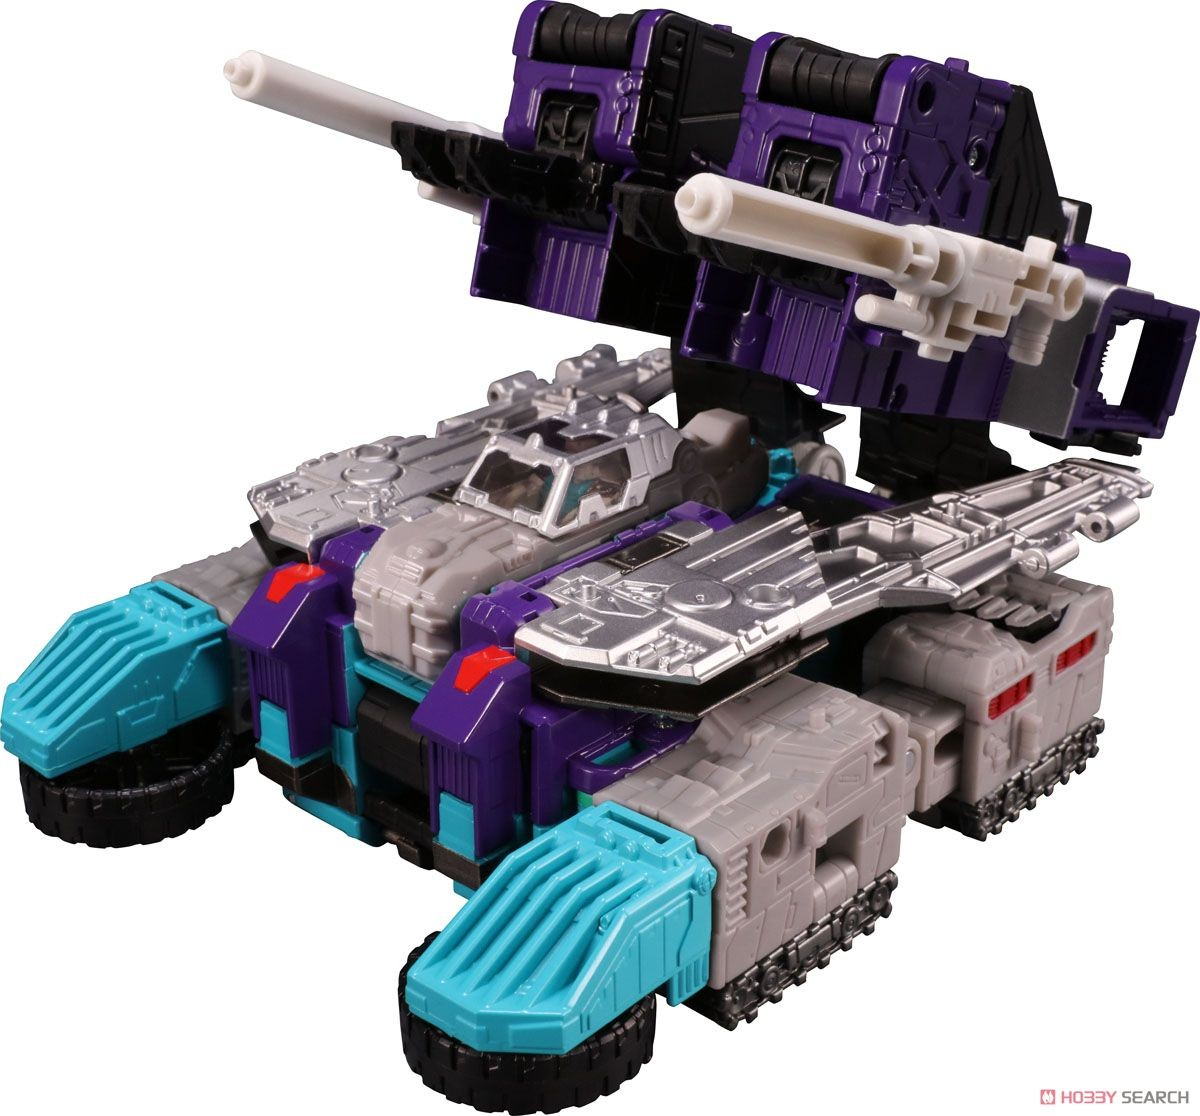 Transformers News: Stock Images for Takara Tomy Transformers Legends LG50 Sixshot, LG51 Doublecross, LG52 Misfire, LG5